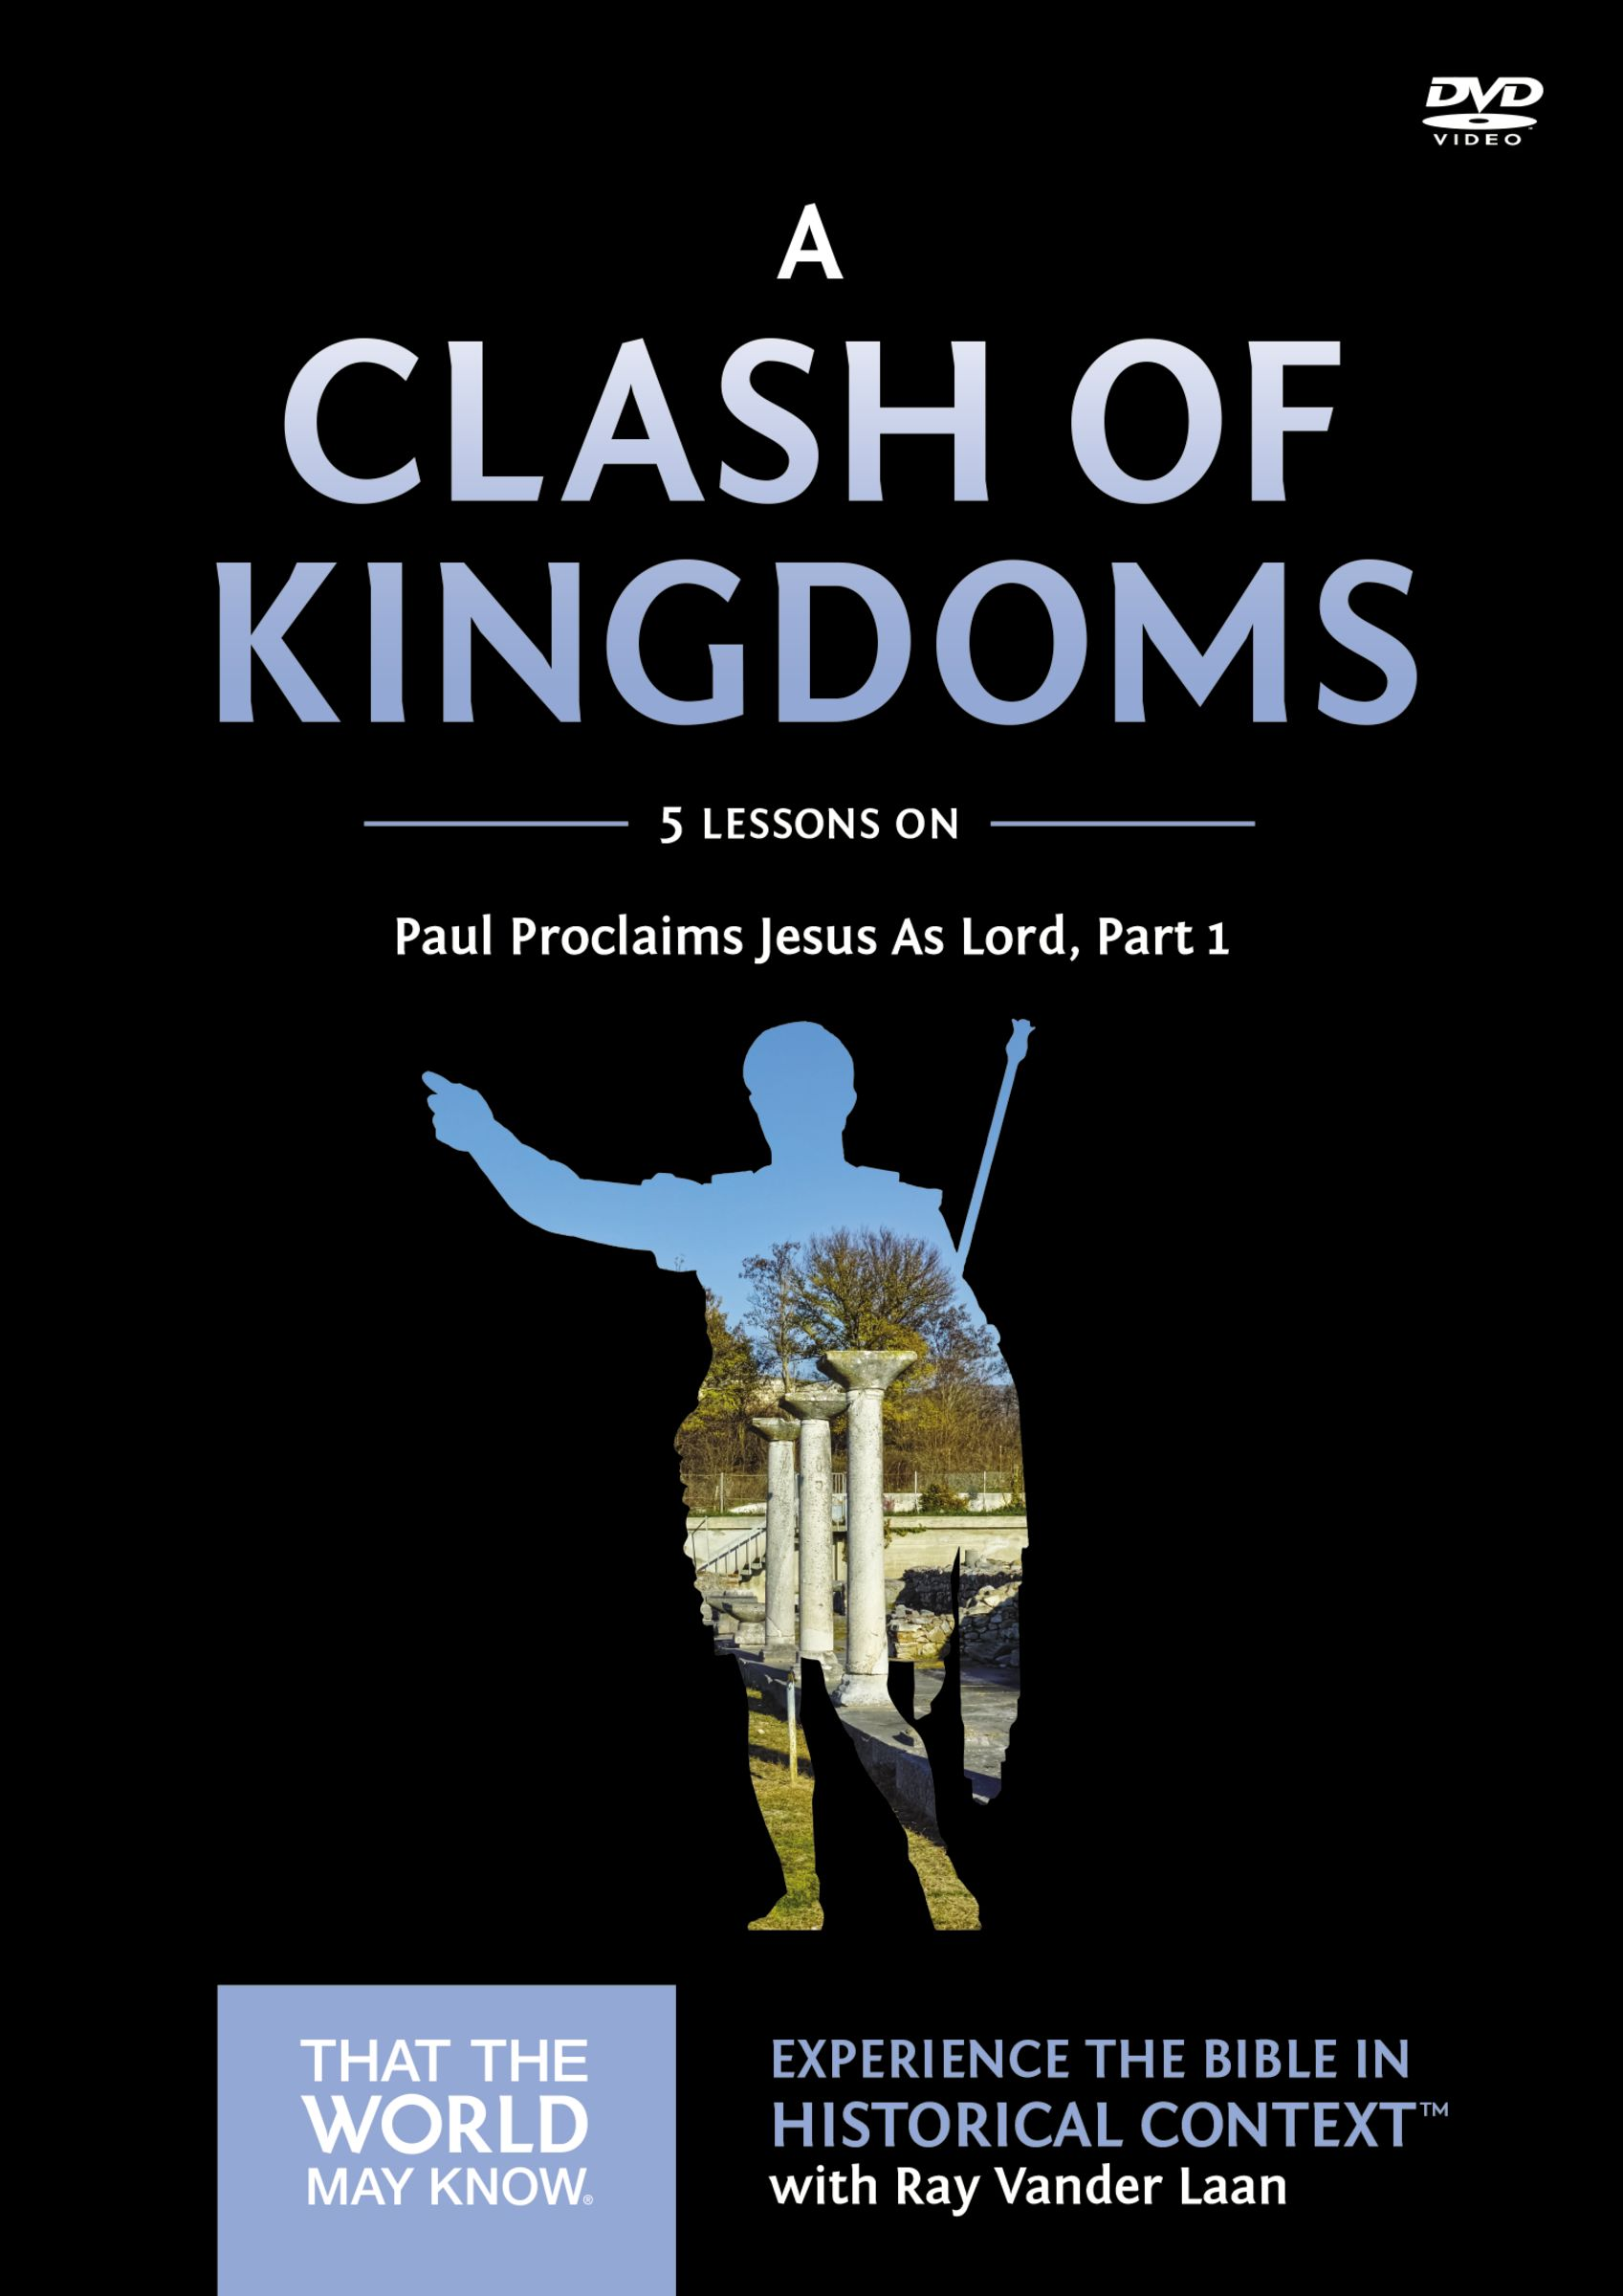 A Clash of Kingdoms Video Study